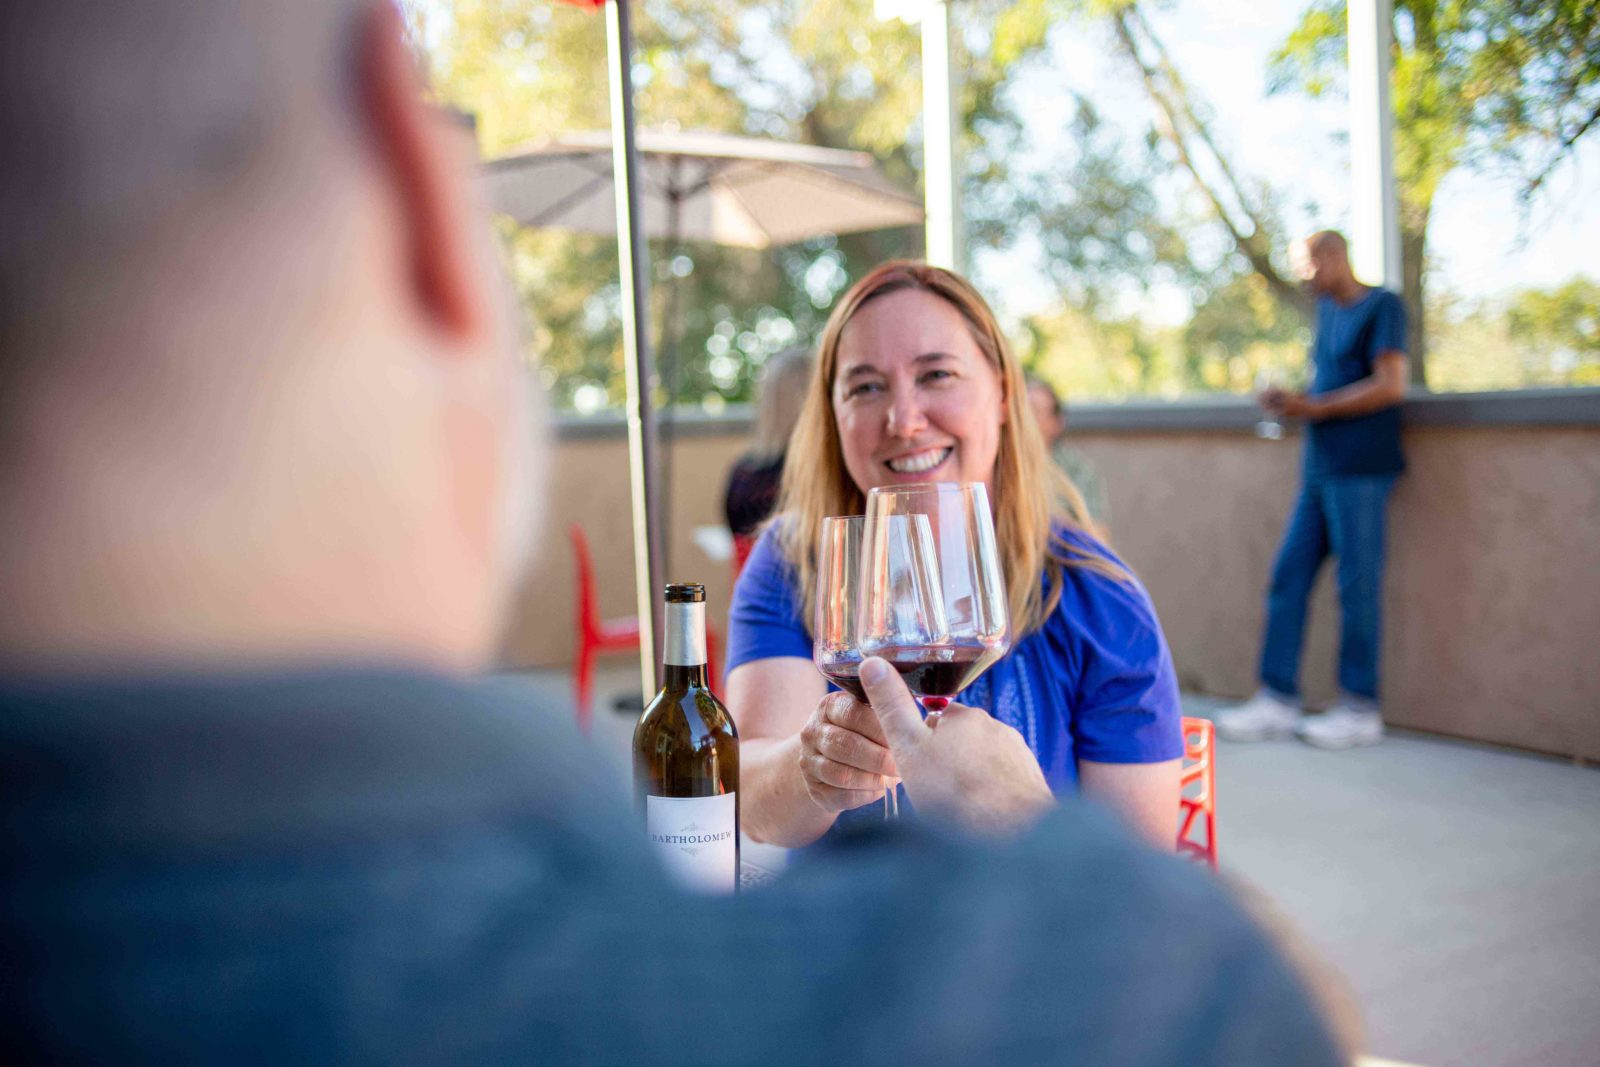 A couple raises their glasses for a toast at Bartholomew Winery's outdoor patio.